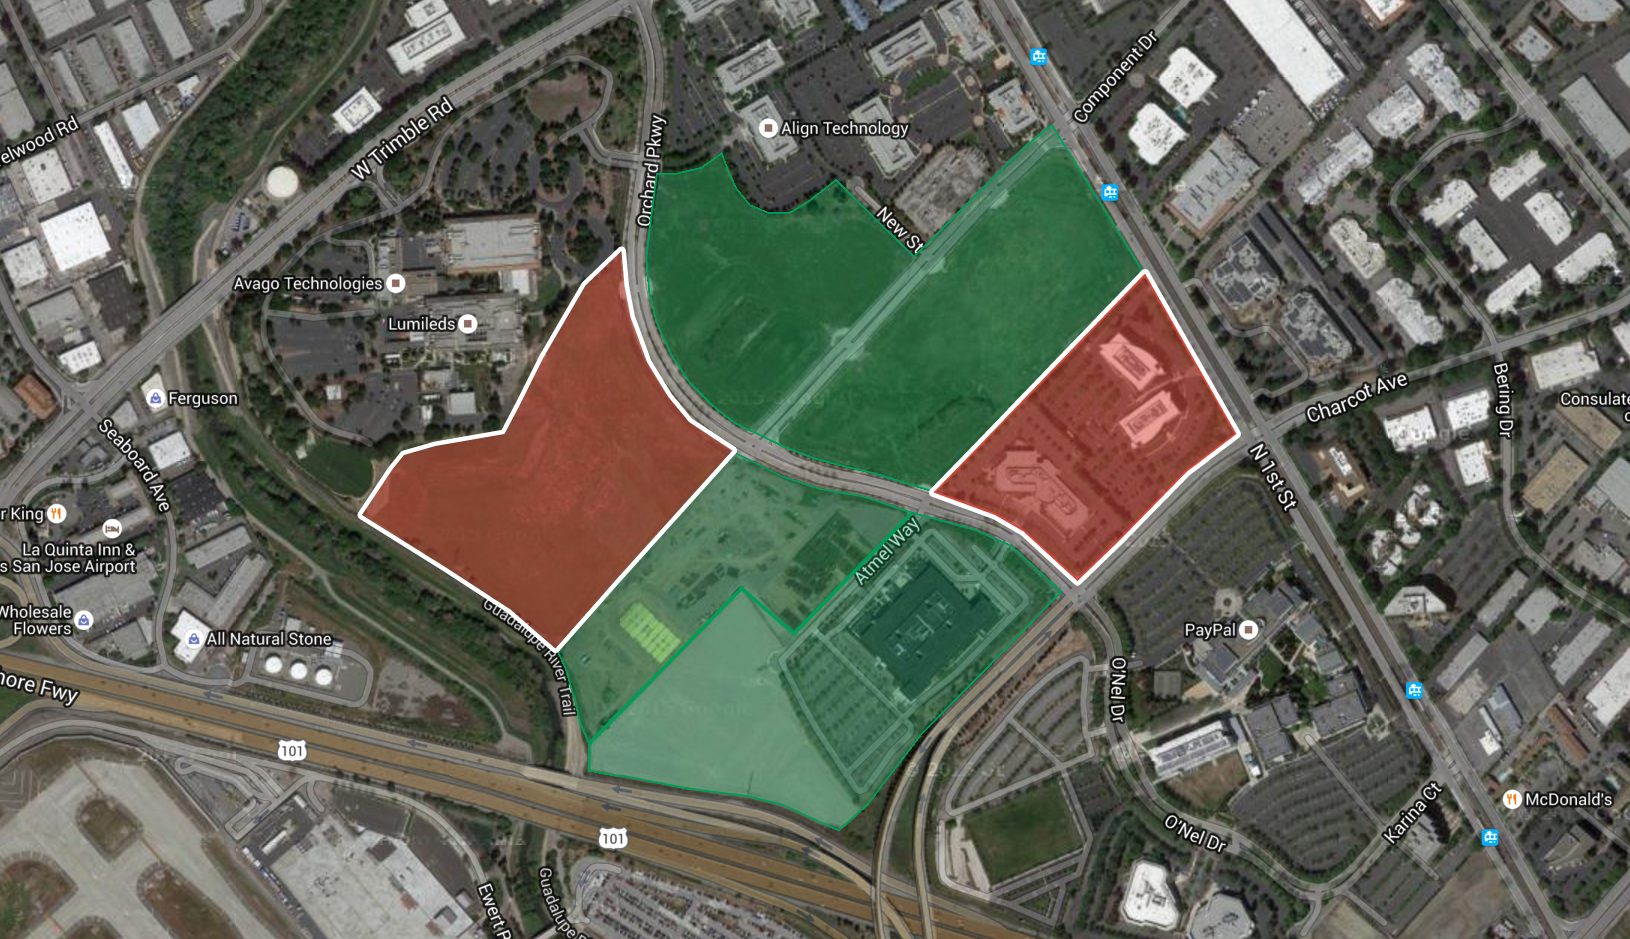 Apple's previously acquired/leased land (green) and property currently not owned by Apple (red).